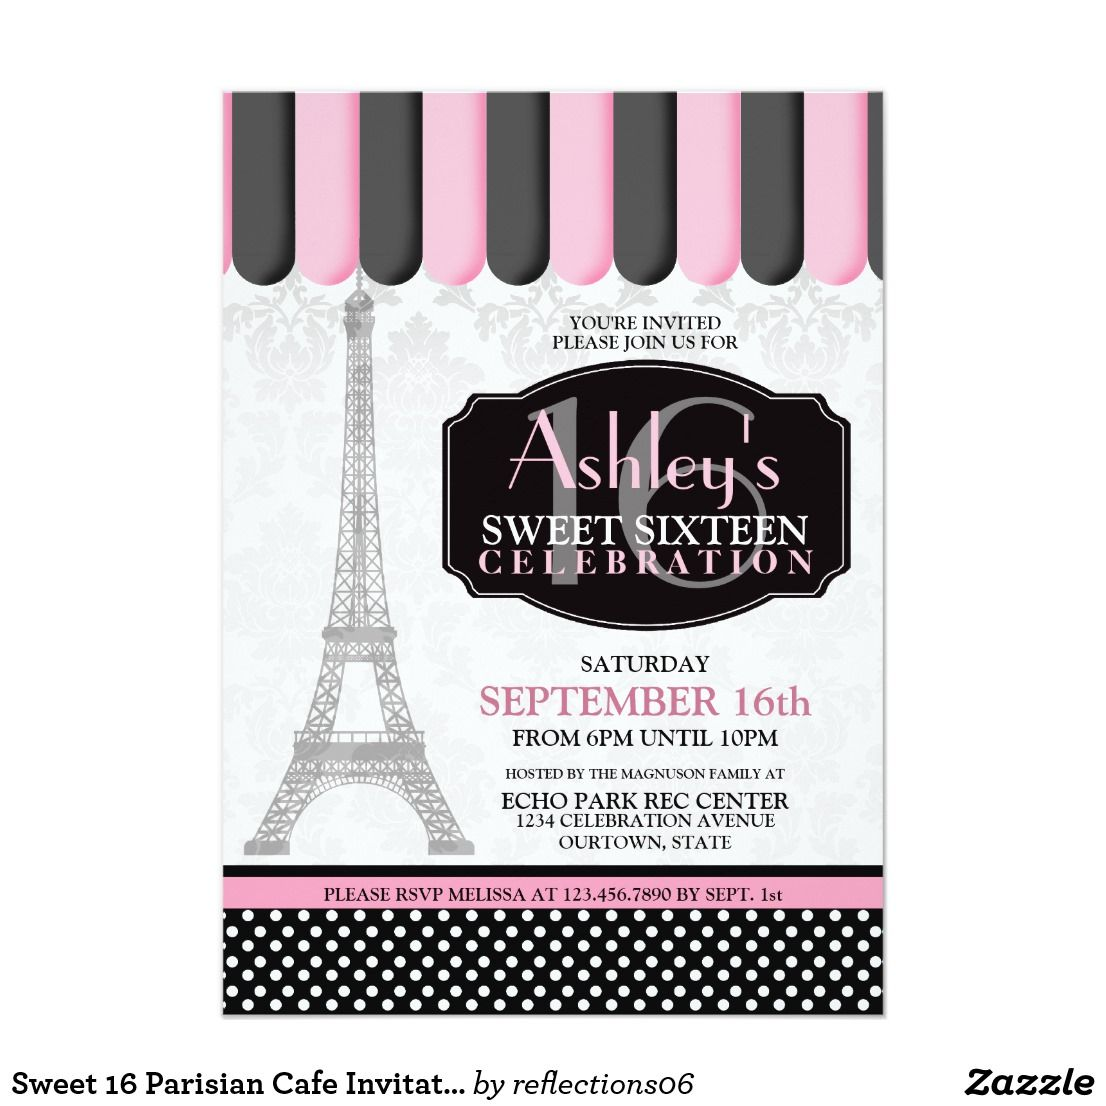 Sweet 16 Parisian Cafe Invitation | Sweet 16 parties, Sweet 16 and ...